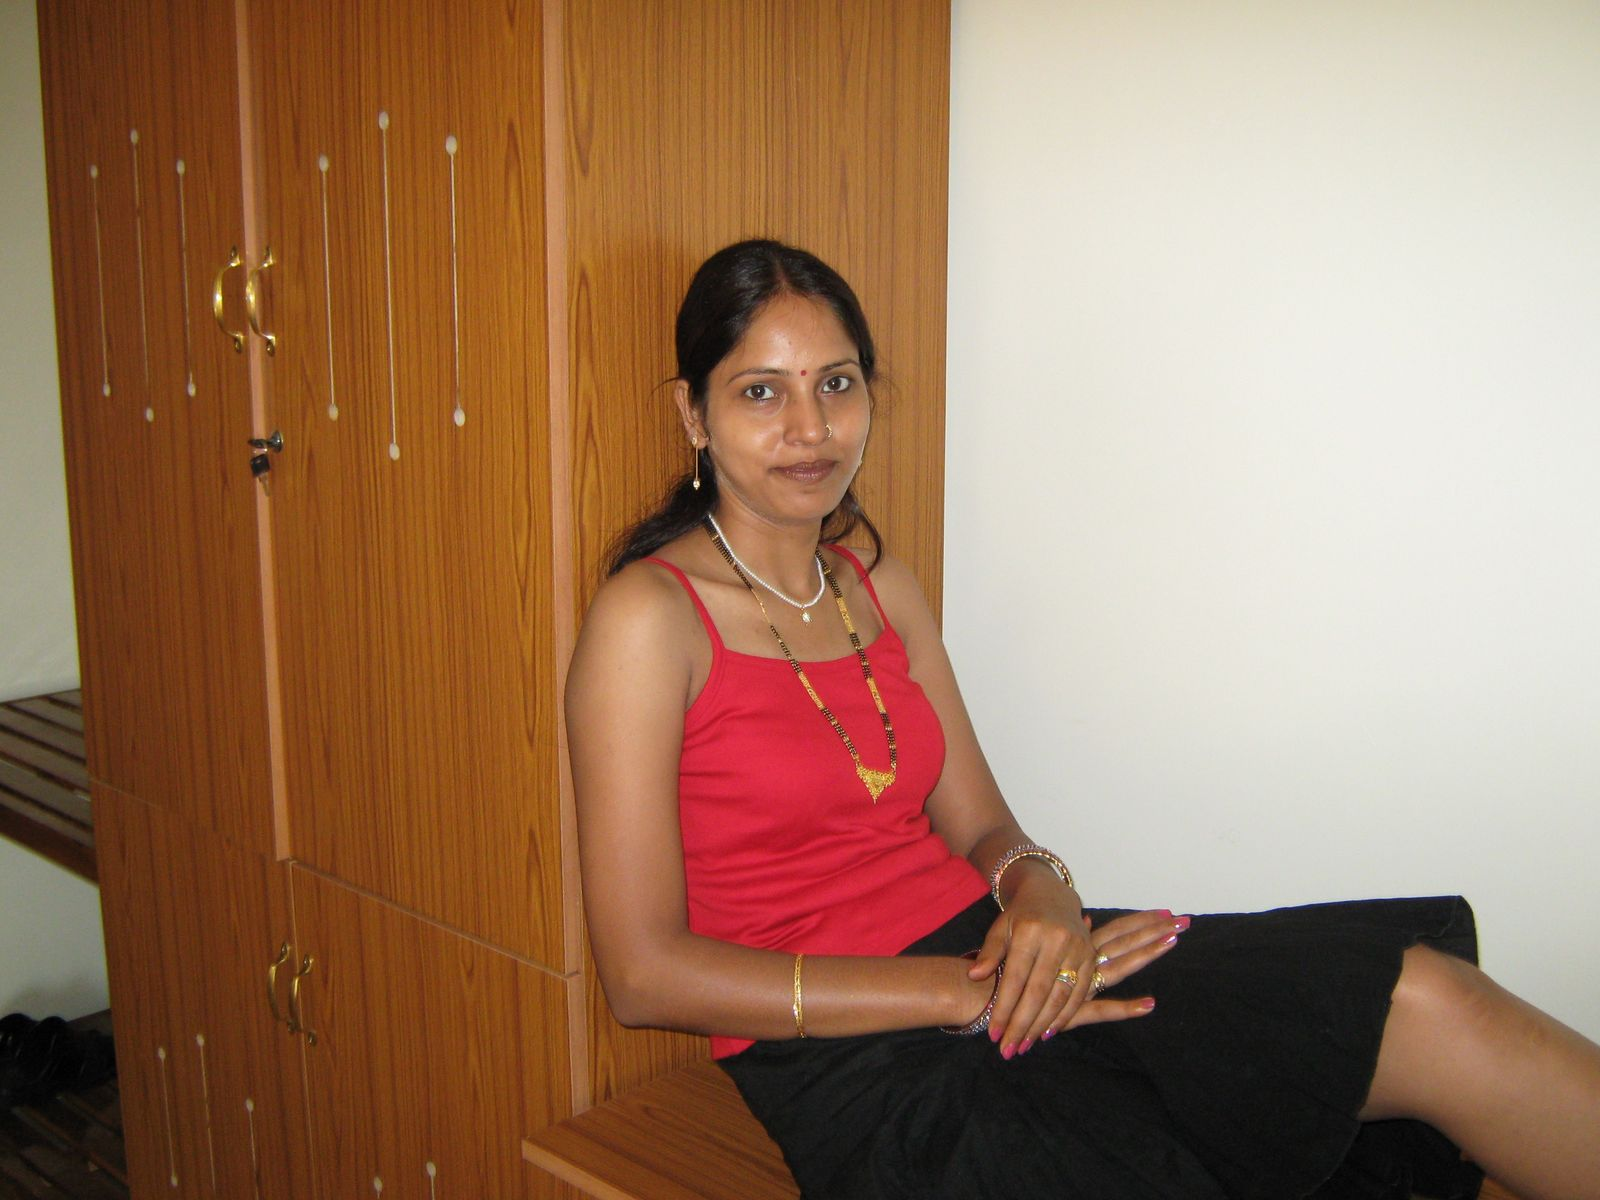 Indian women seeking american men